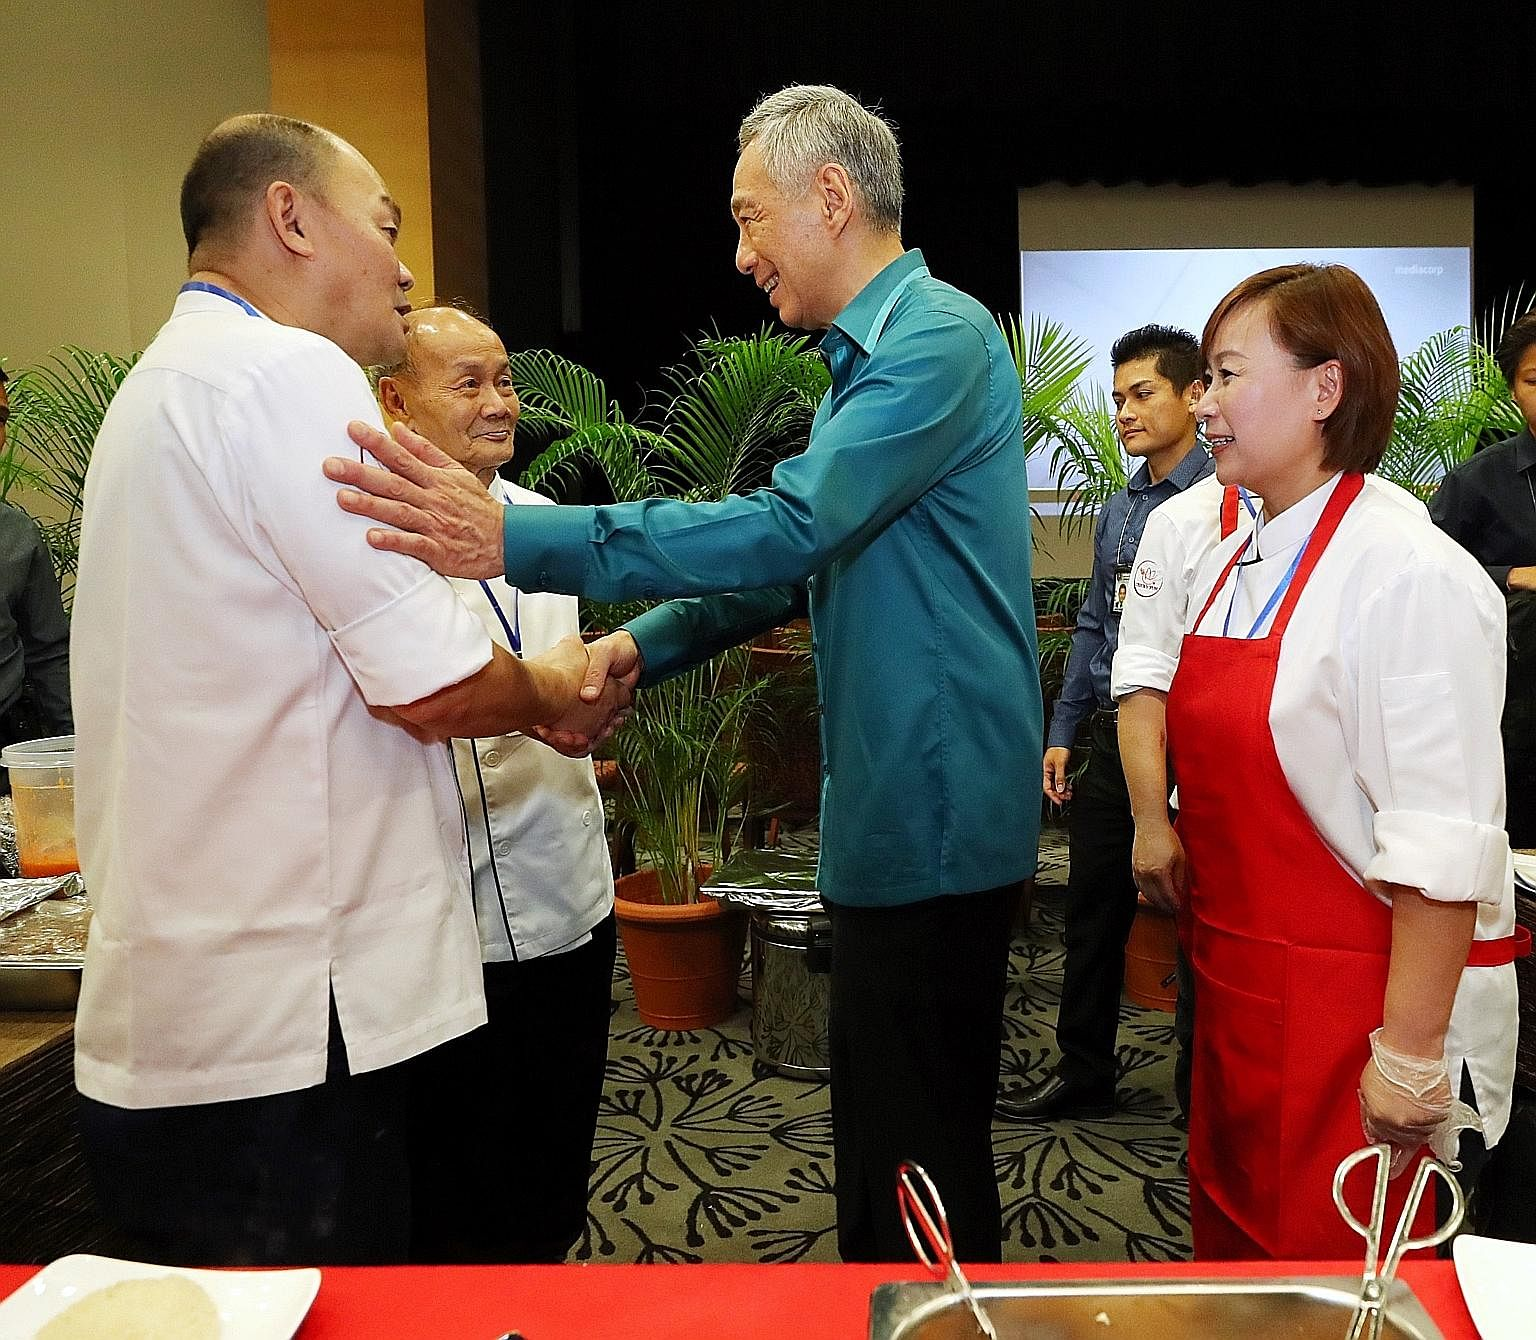 Prime Minister Lee Hsien Loong with Mr Raymond Kiang (far left), 57, who sells chicken rice at Our Tampines Hub, his father Kiang Joon Toh, 70, one of the pioneer chefs who developed Chatterbox chicken rice at Mandarin Hotel, and sister Susan. Singap